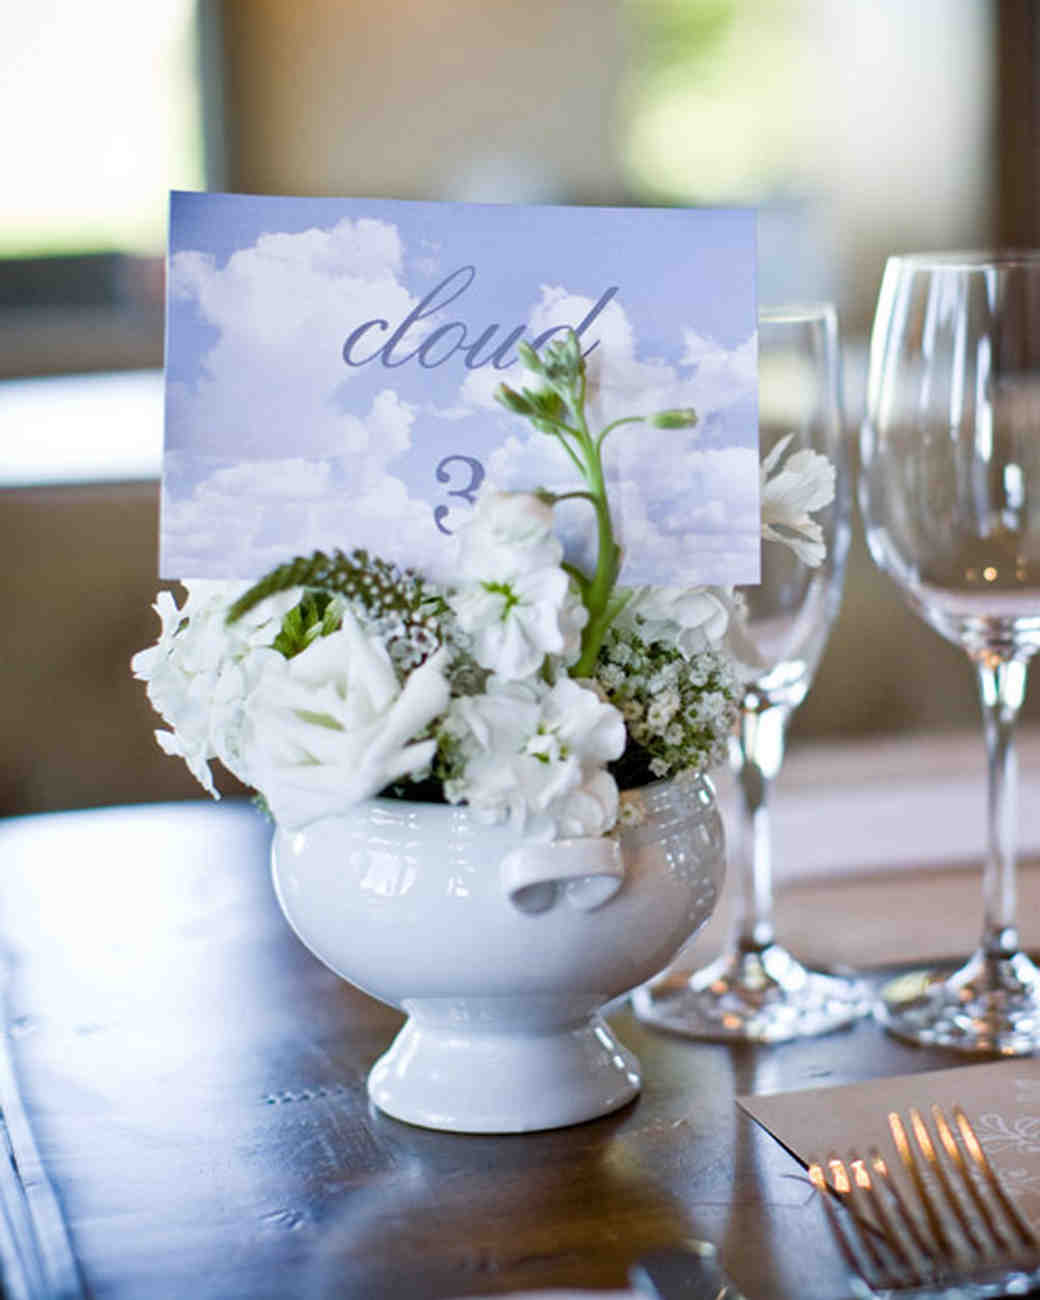 Designer Wedding Flowers: Elegant And Inexpensive Wedding Flower Ideas